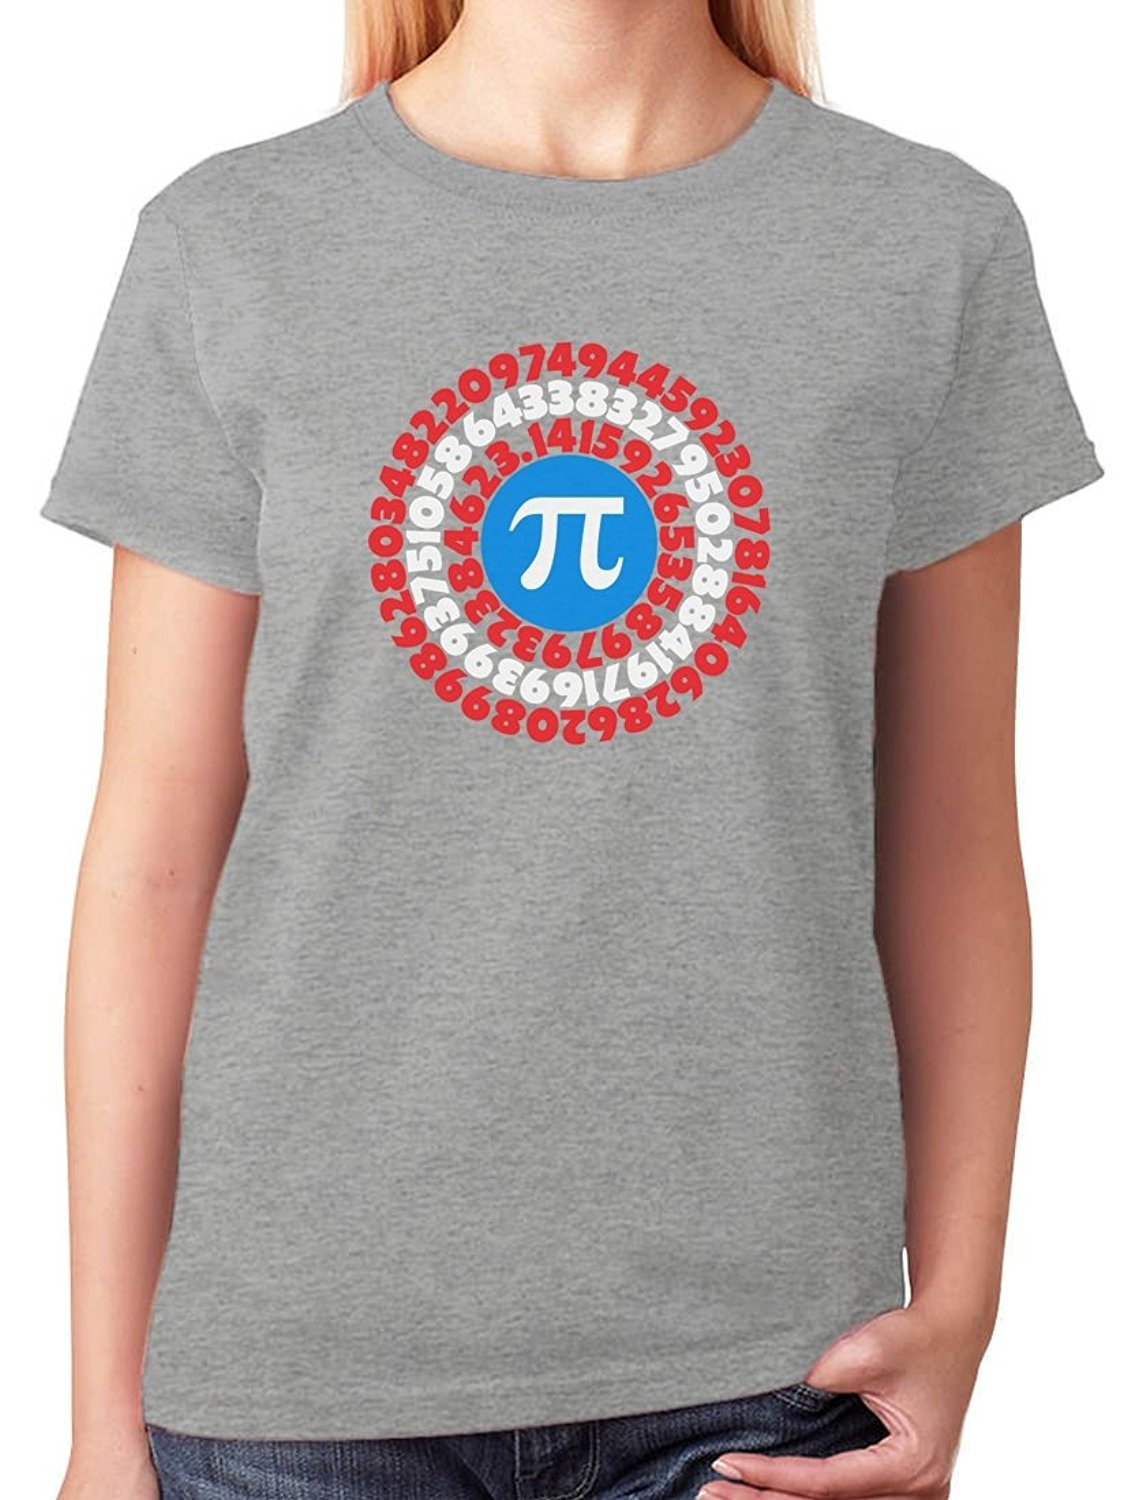 Personality WomenS Superhero - Captain Pi Gift For Math Geeks Pi Symbol Zomer O-Neck Short Sleeve T Shirts